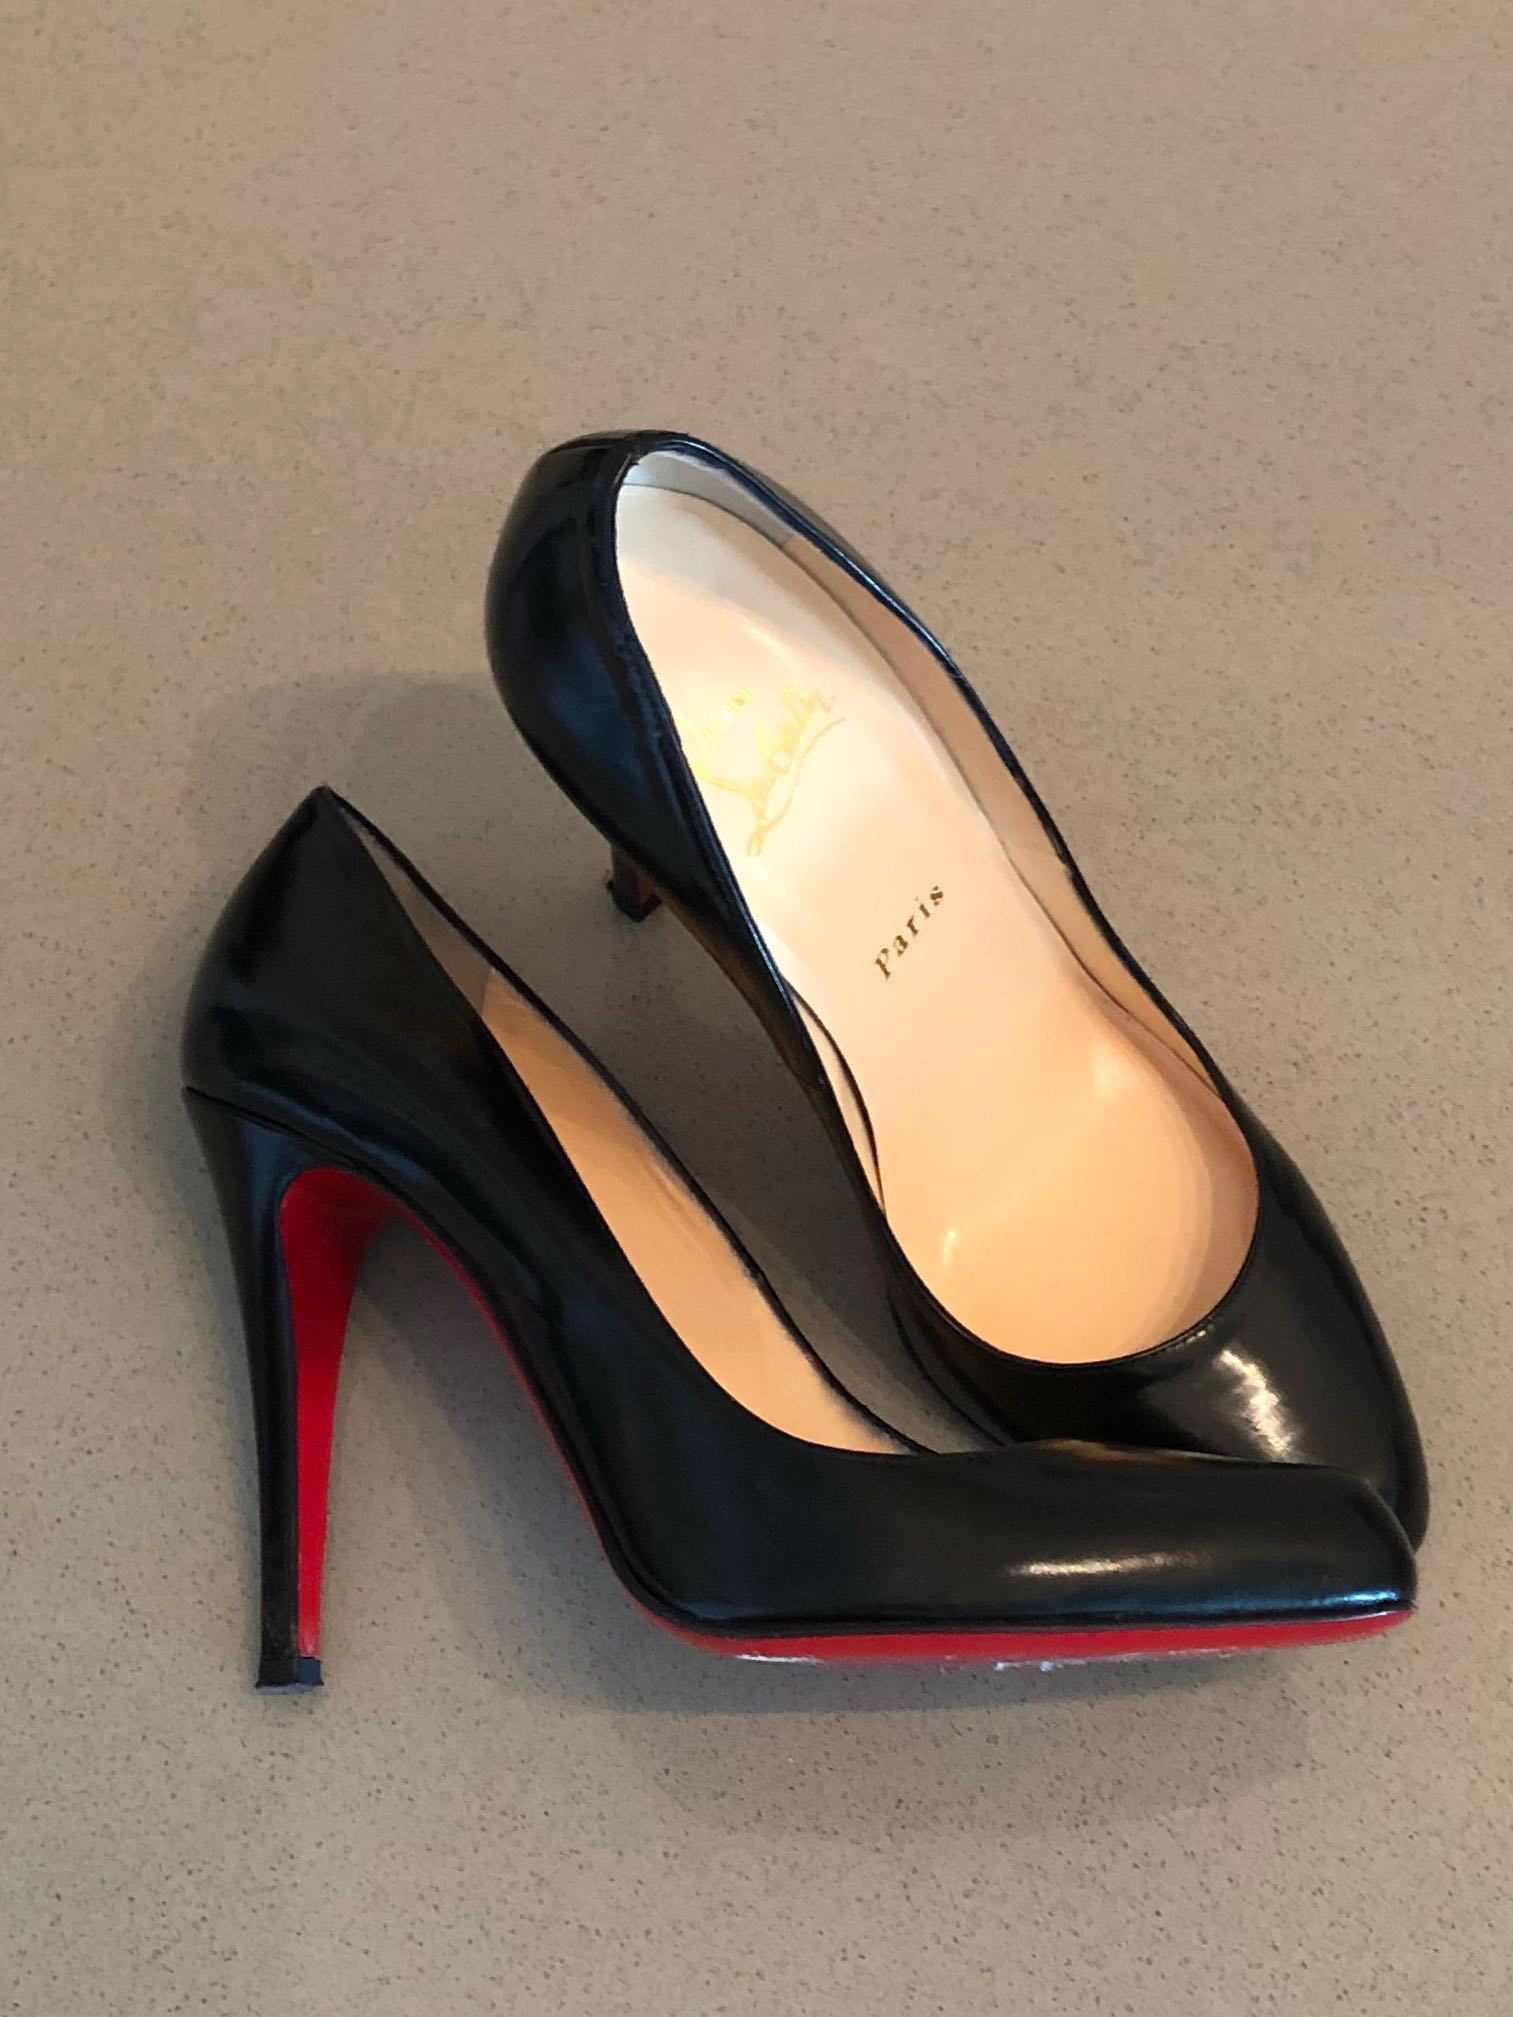 a5f976dd2ecb Christian Louboutin Black Decollete Pumps - Excellent Condition ...